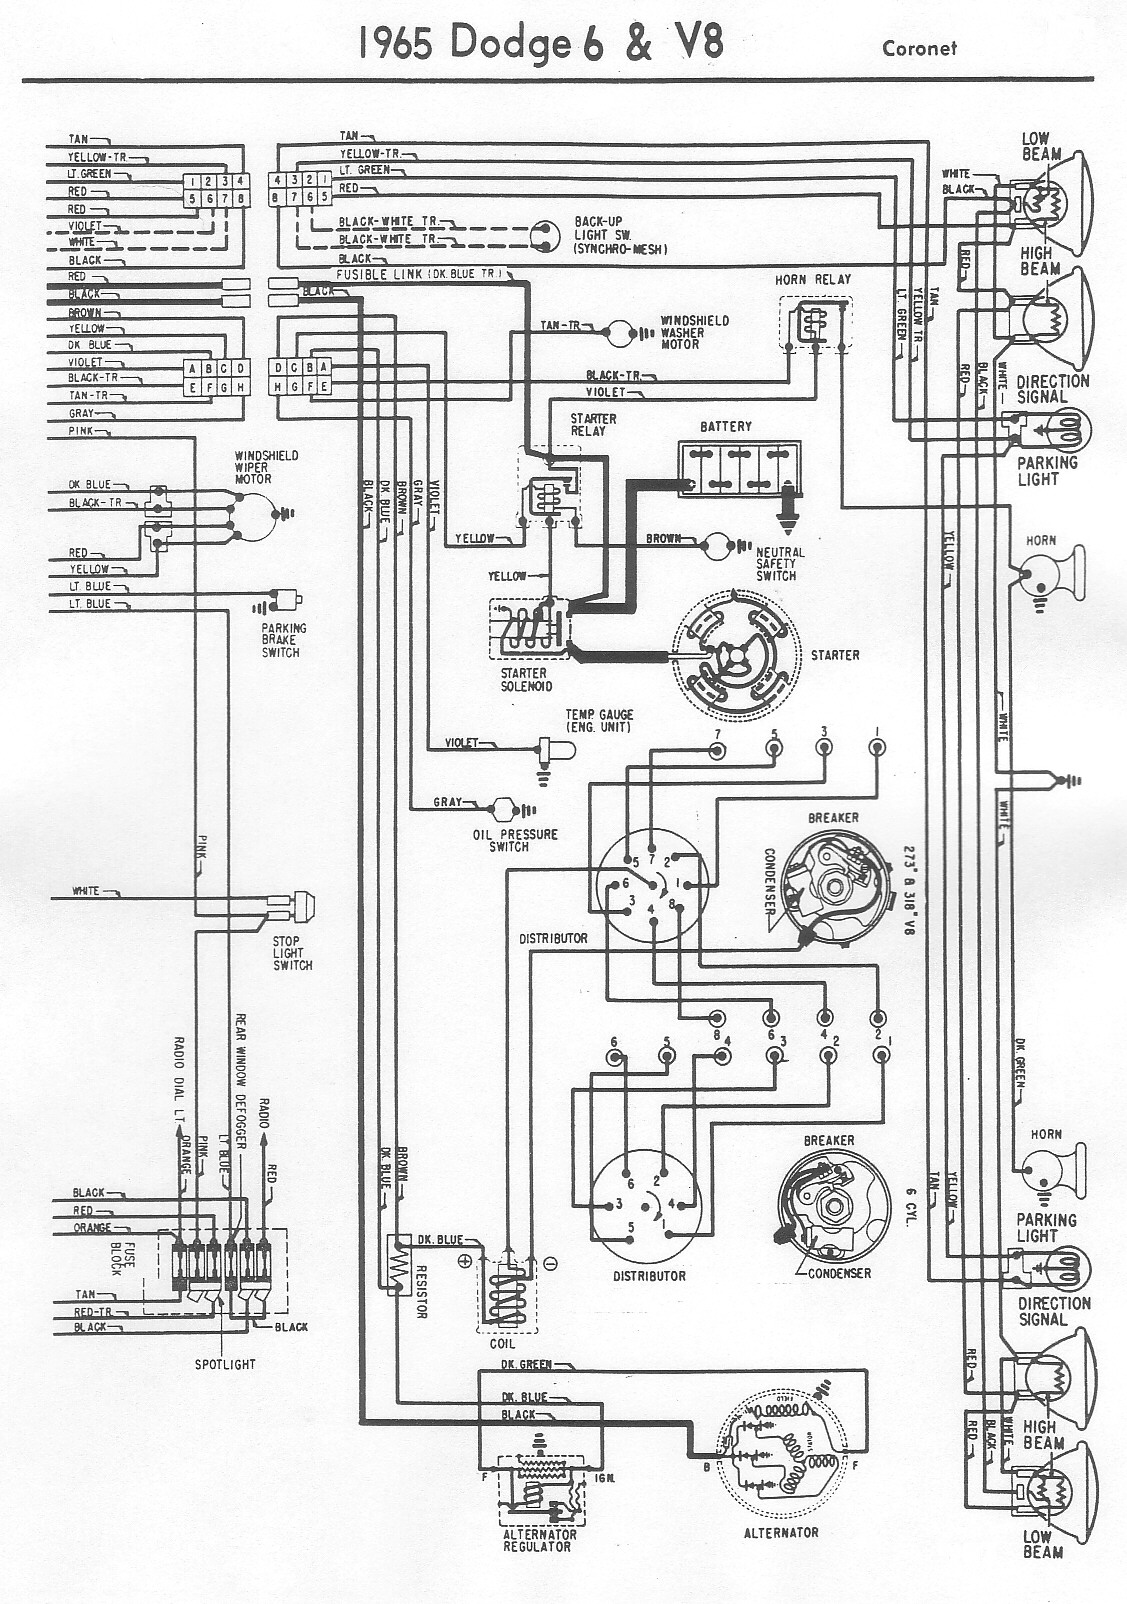 1968 Chevelle Dash Wiring Diagram Free Download 1965 Wiring Diagram Vintage Dodge Coronet2 Bob S Garage